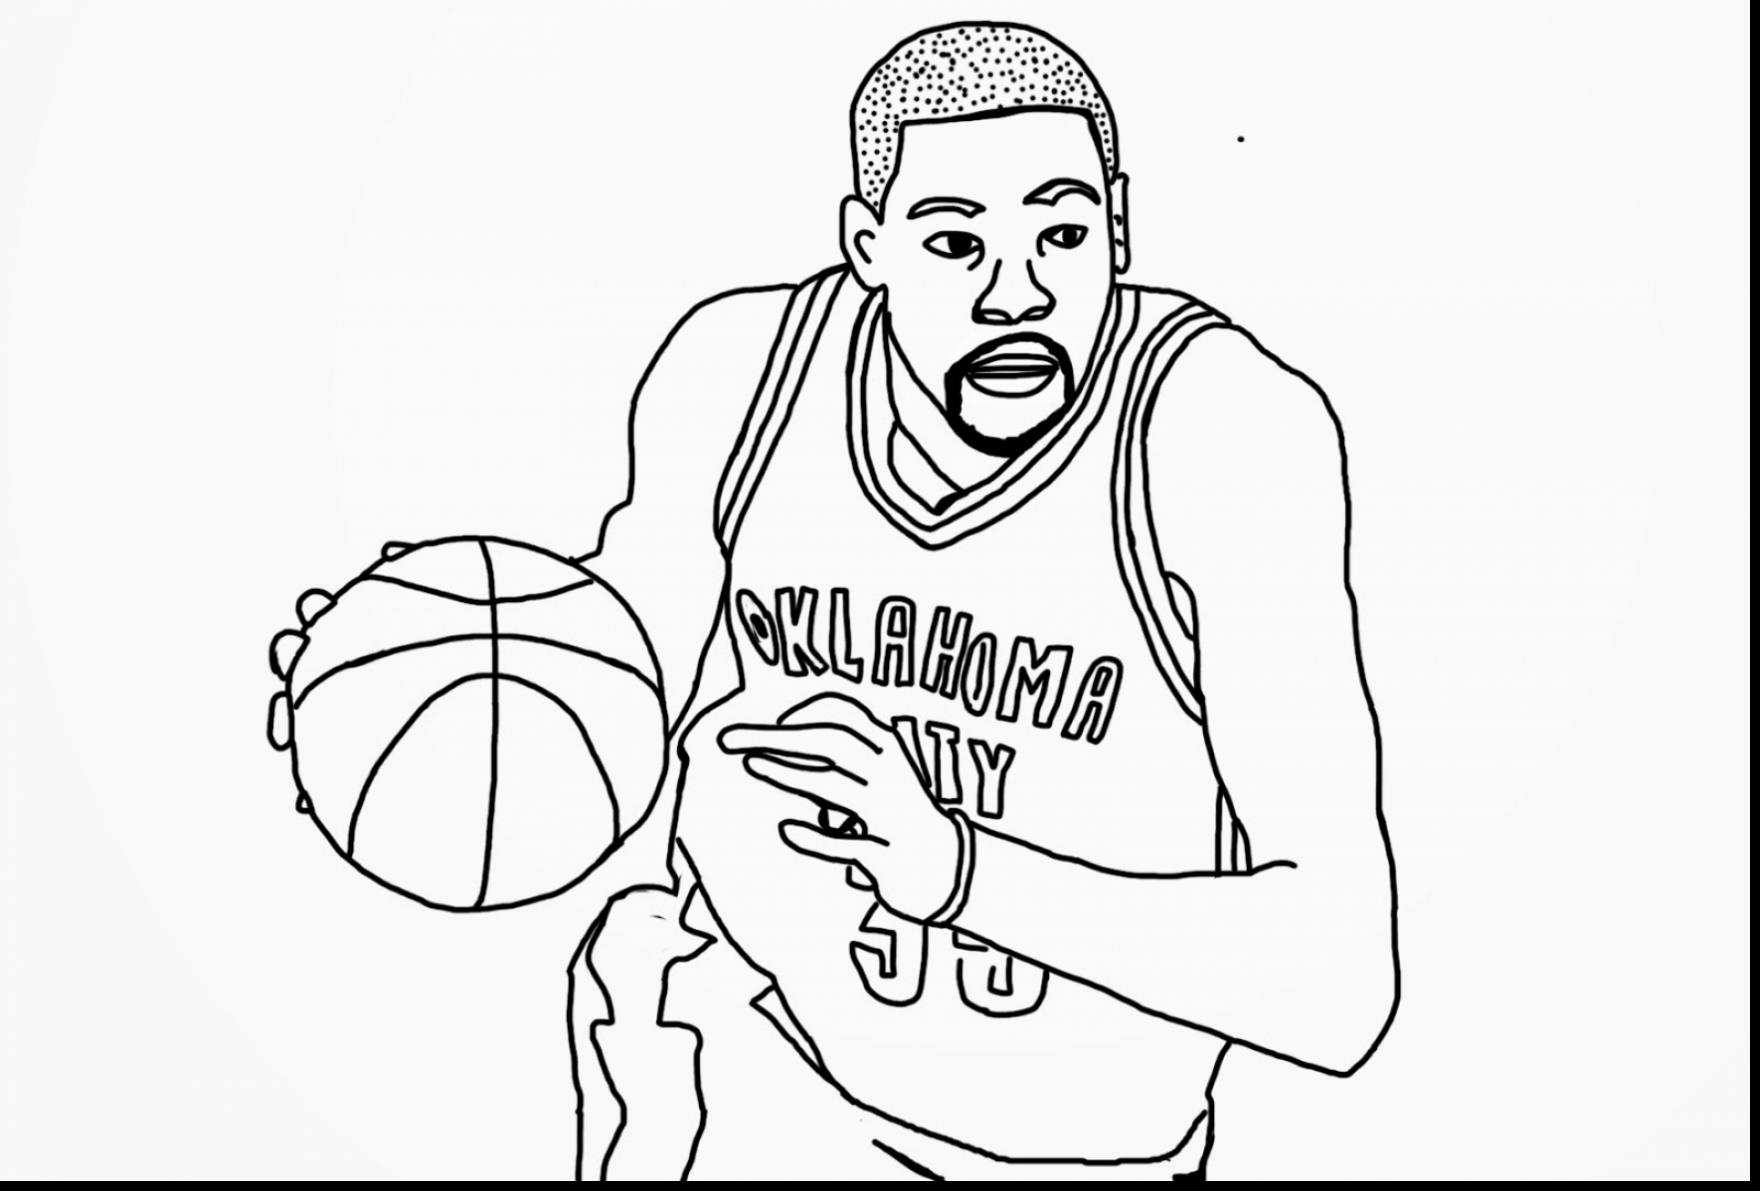 1760x1191 Basketball Player Coloring Pages To Print Of Kevin Durant For Page